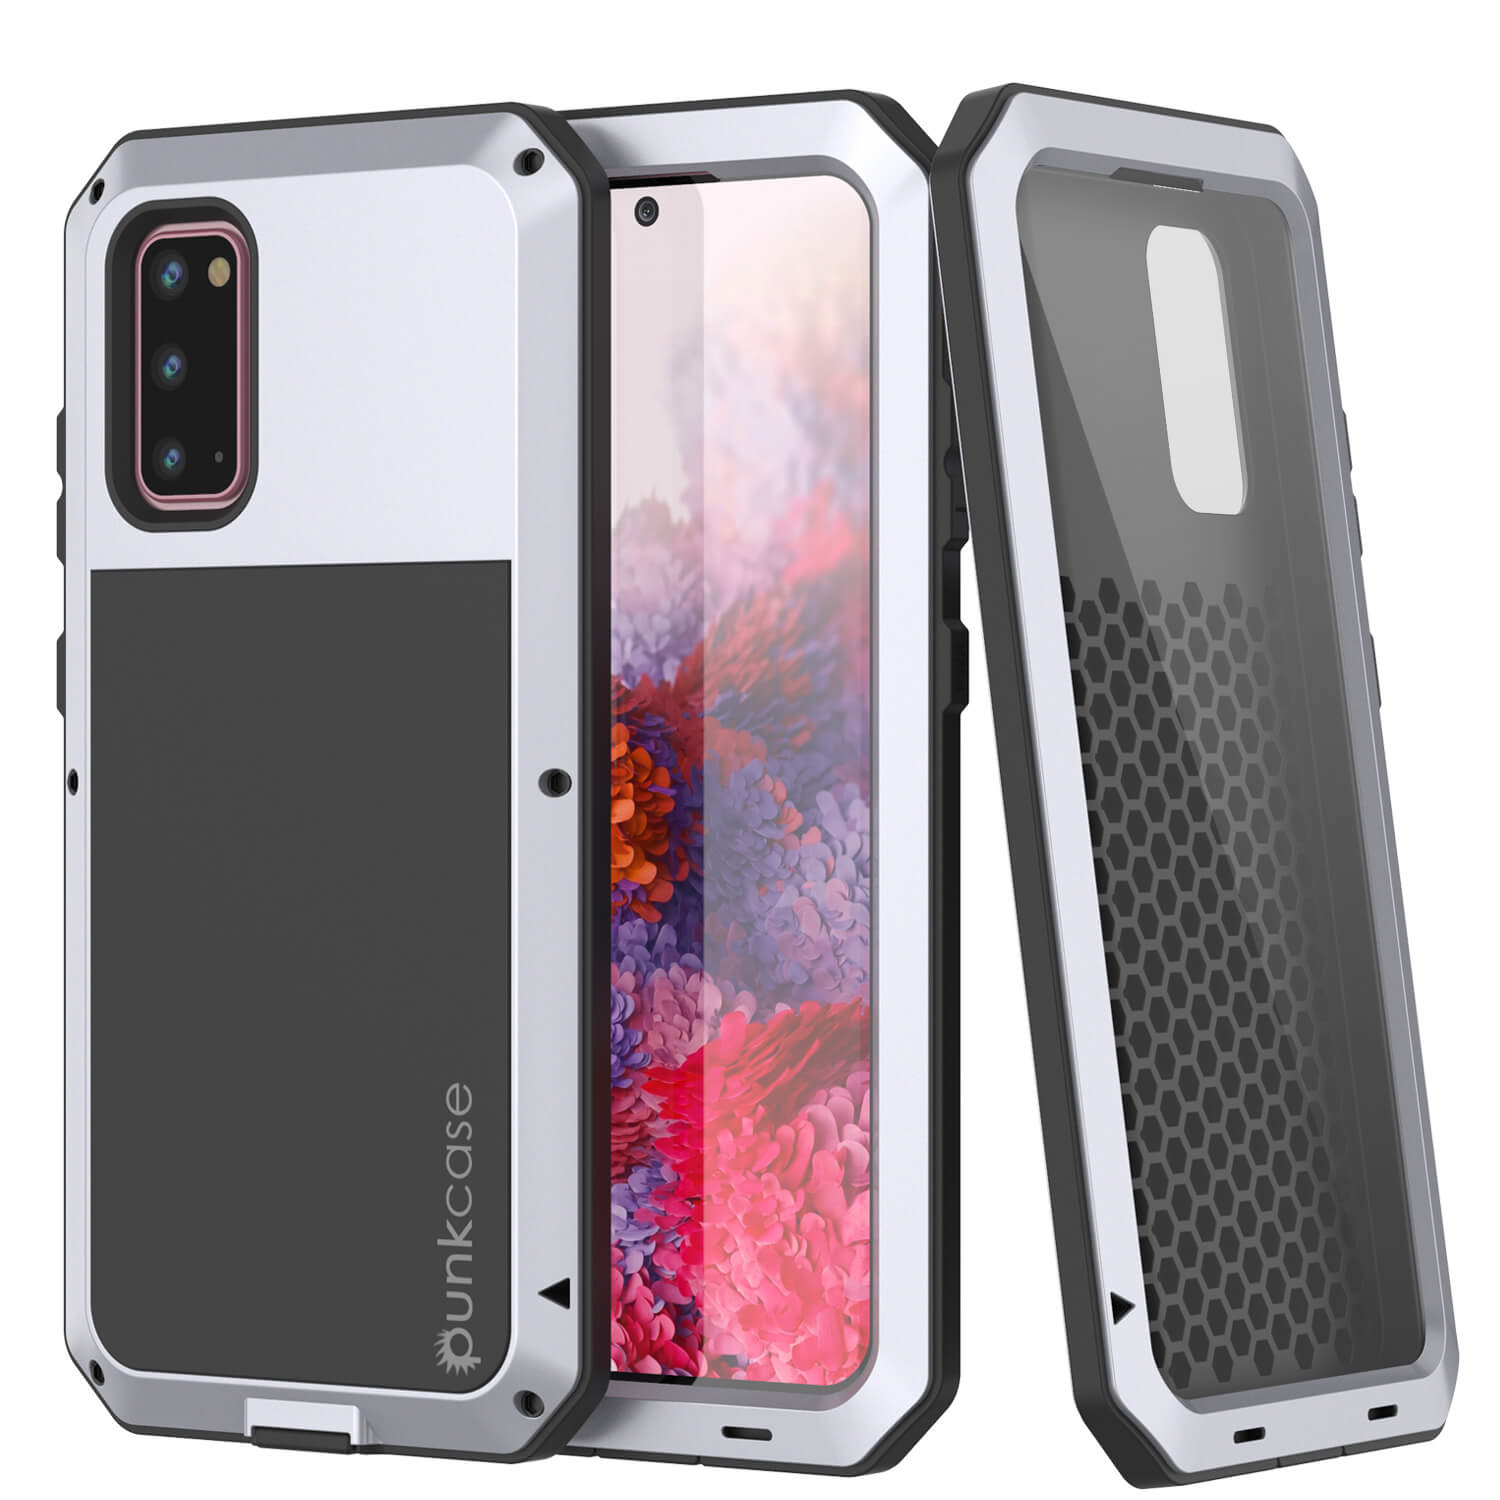 Galaxy s20 Metal Case, Heavy Duty Military Grade Rugged Armor Cover [White]